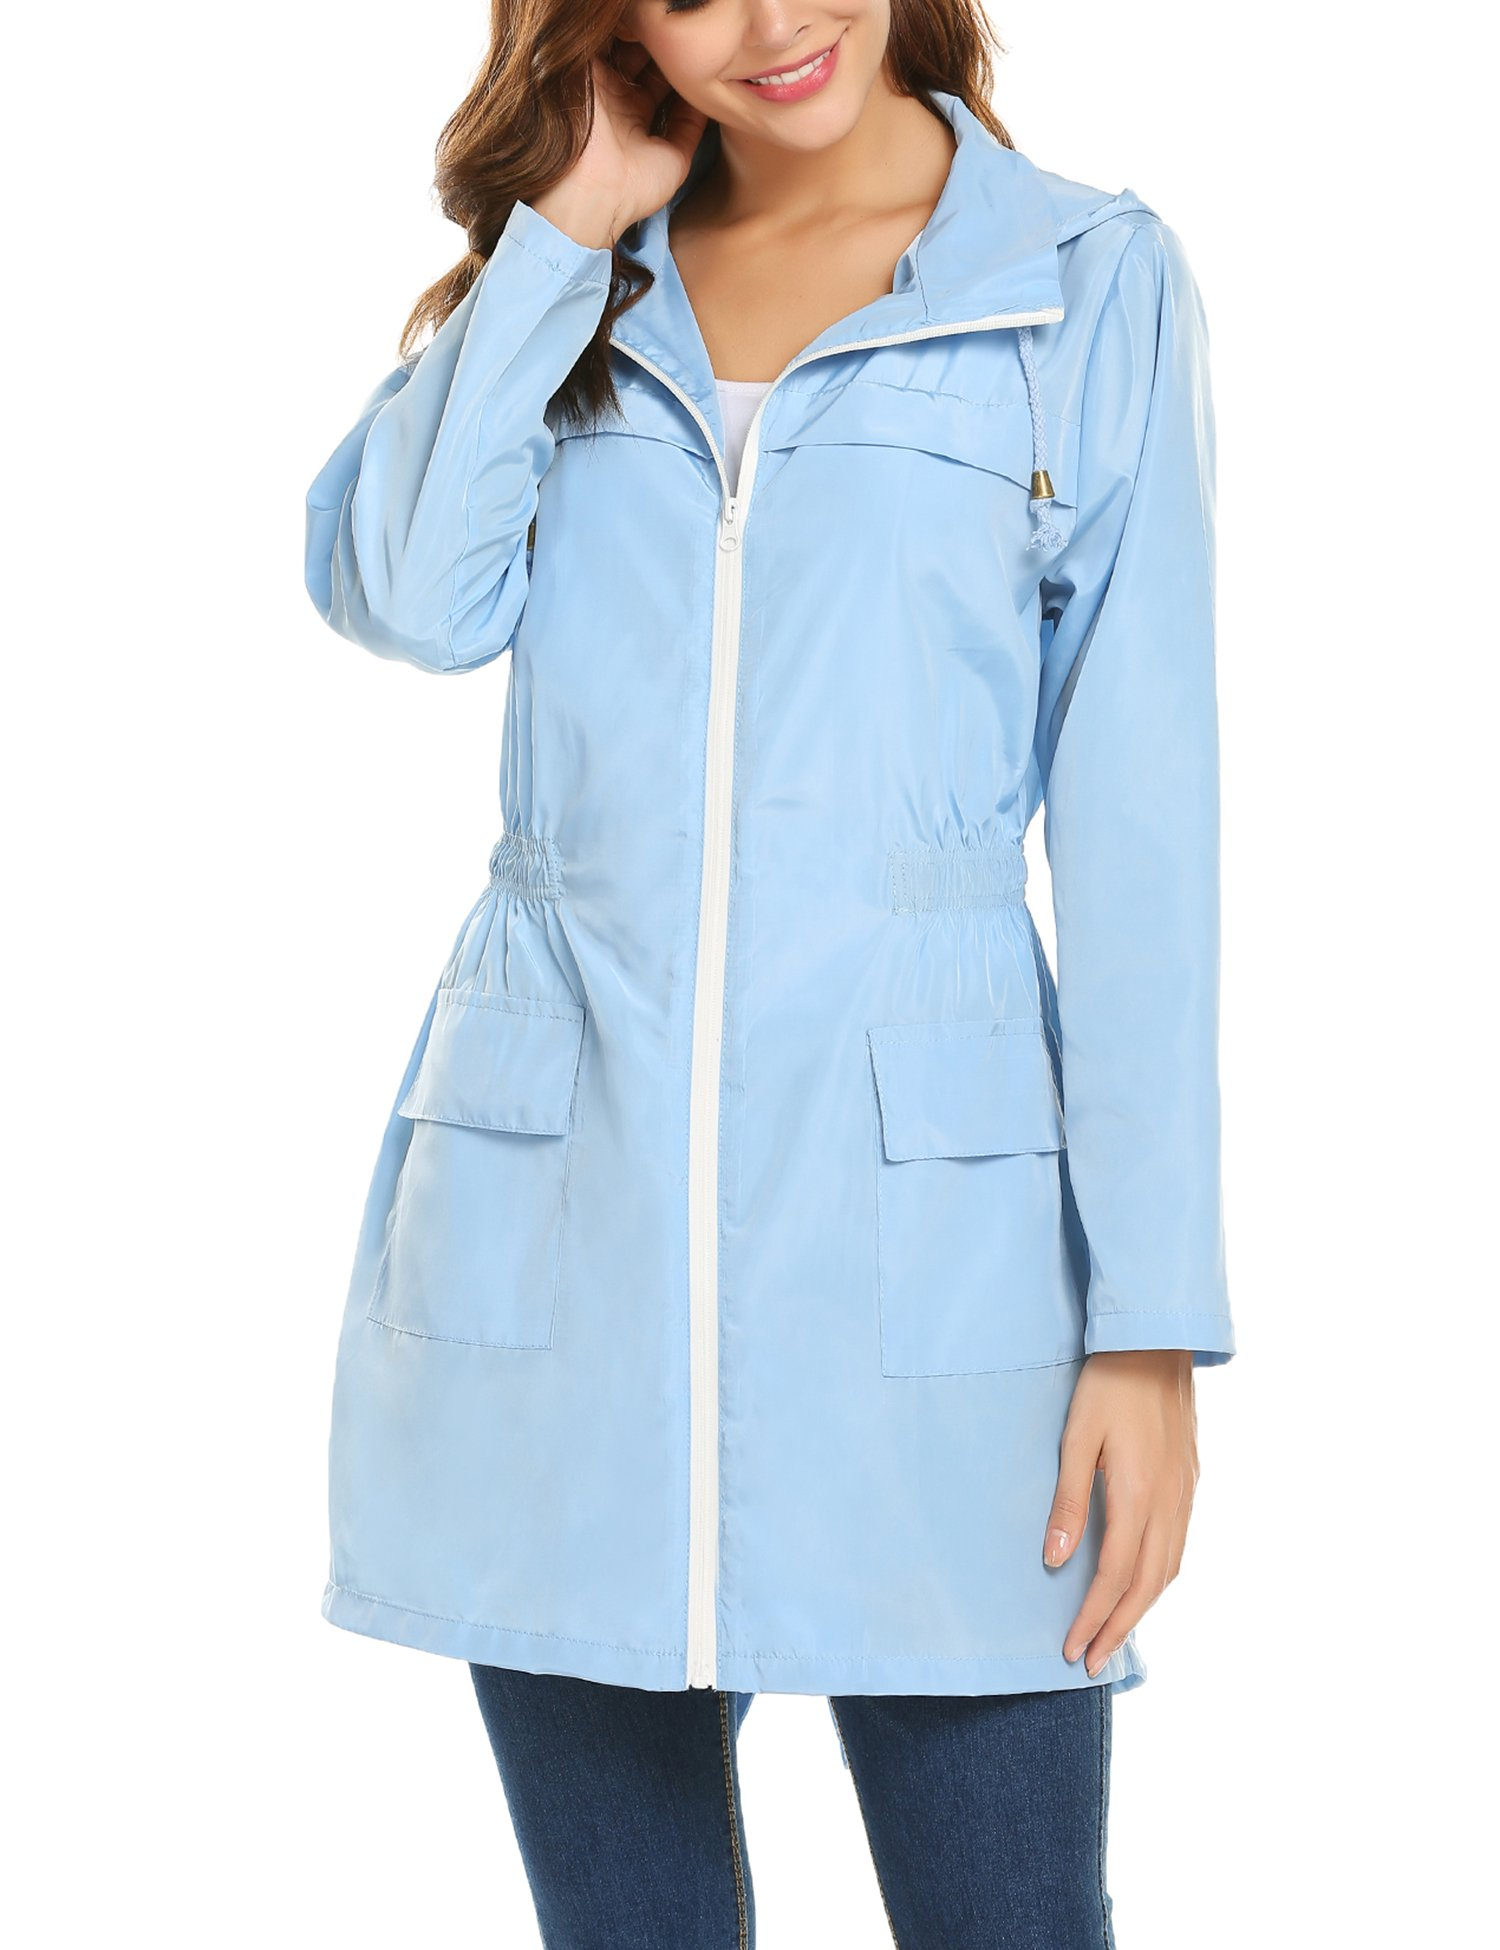 ZHENWEI Womens' Waterproof Lightweight Raincoat Hooded Outdoor Hiking Long Rain Jacket (XL, Light Blue)